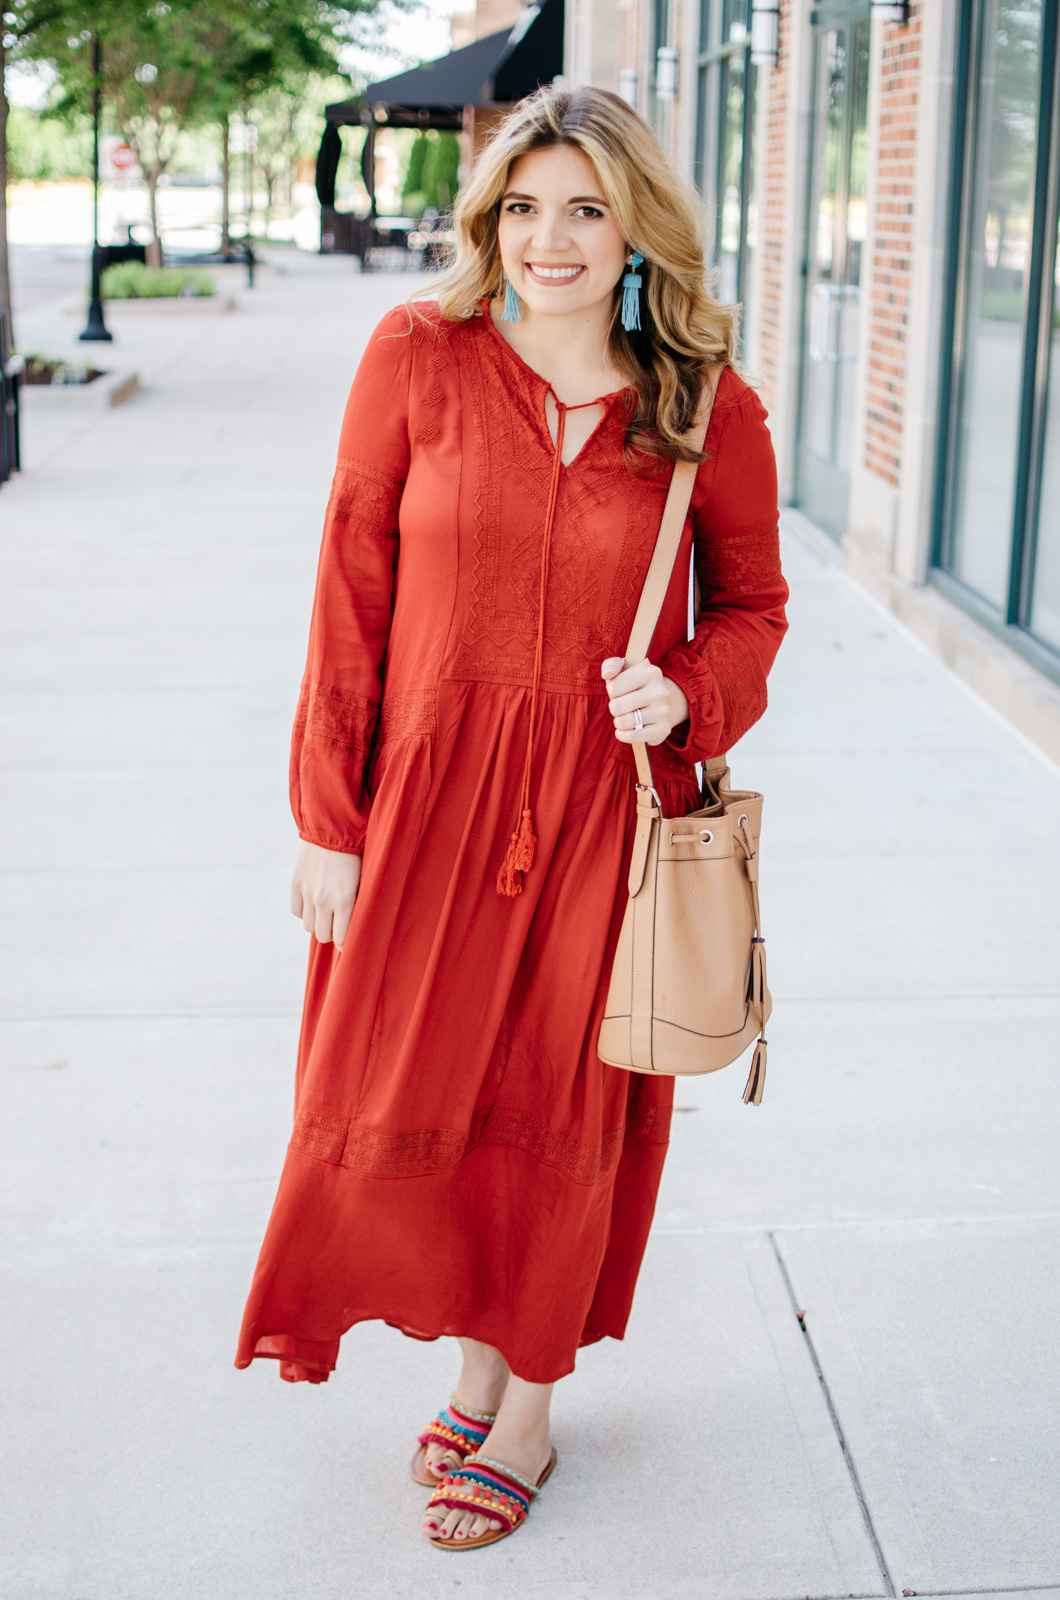 easy summer outfits - boho maxi dress | For more cute casual outfit ideas, head to bylaurenm.com!